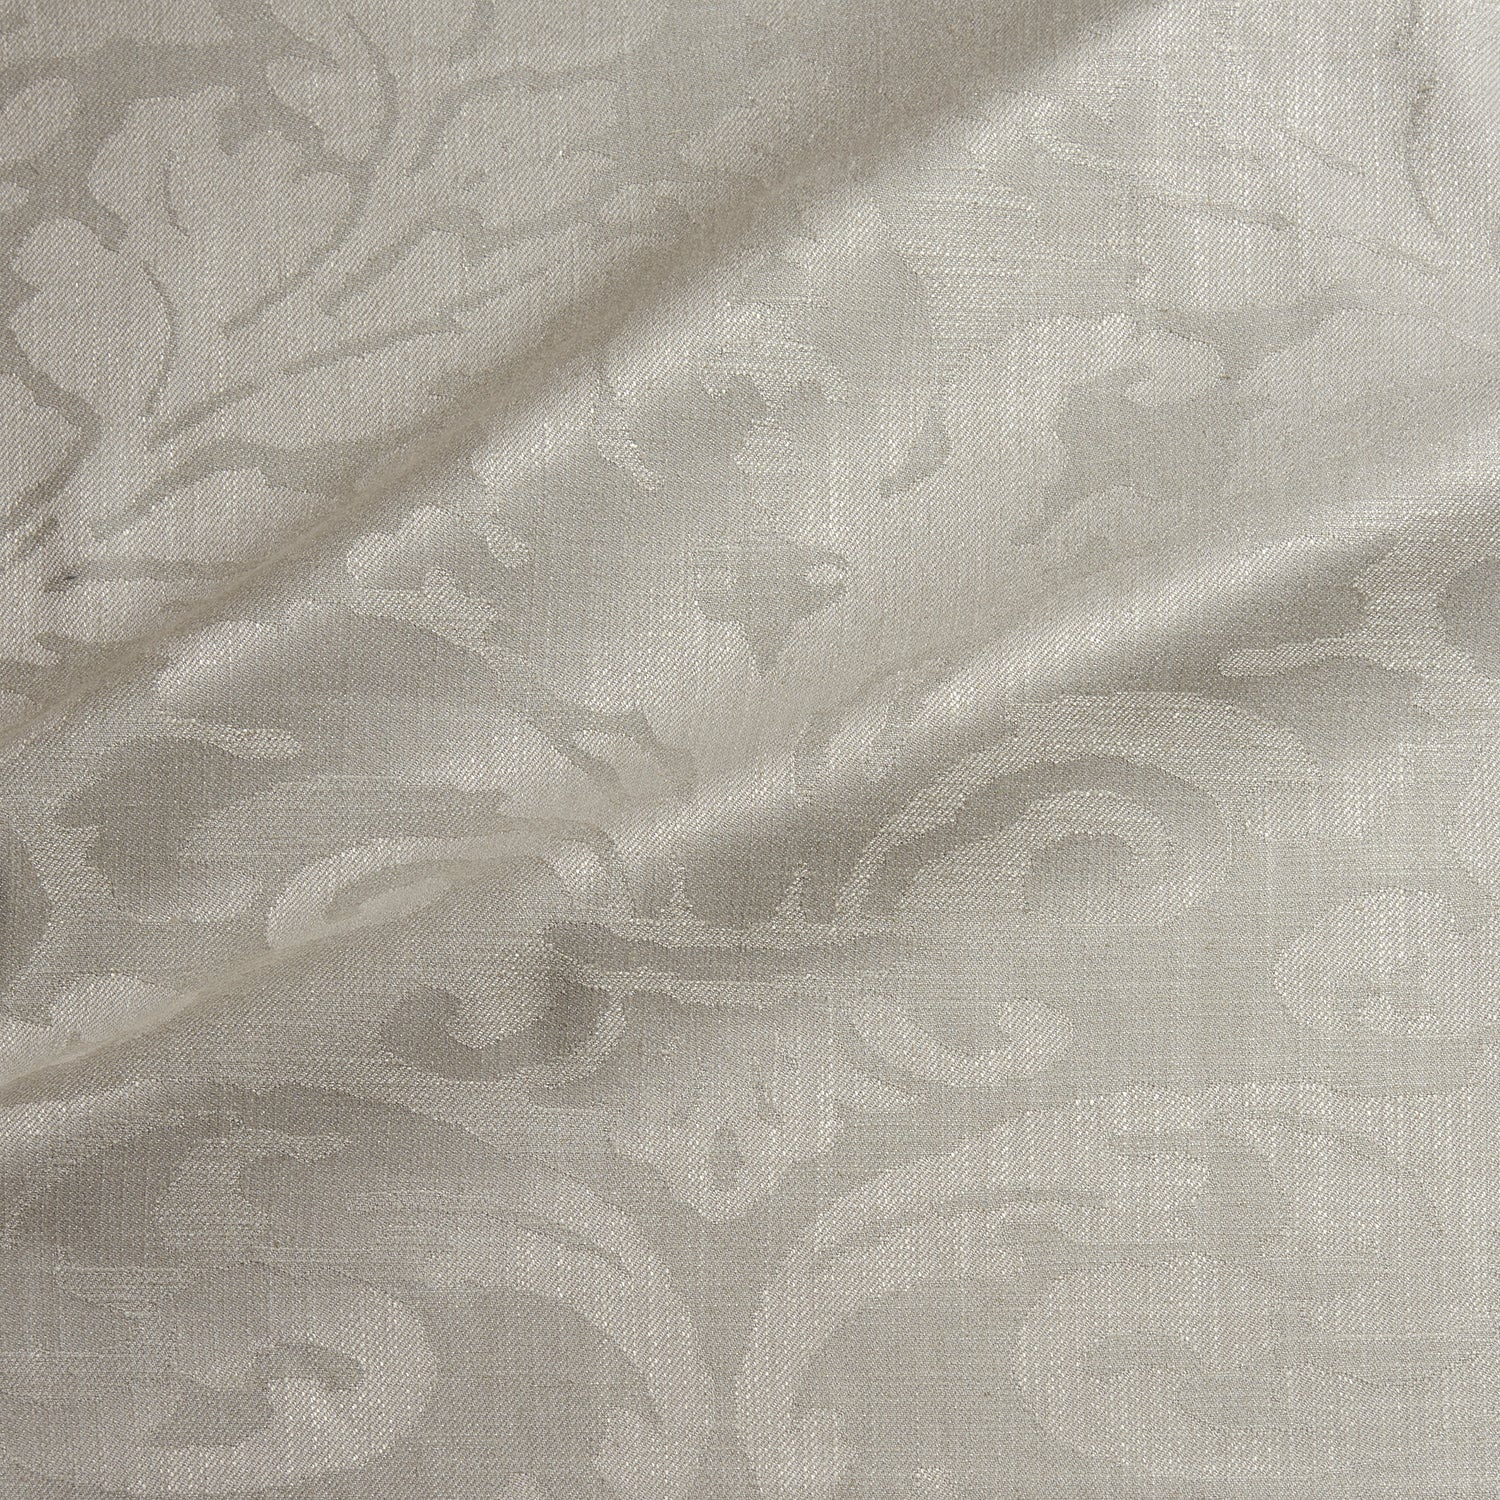 Fabric swatch of a contemporary damask fabric in a neutral colour